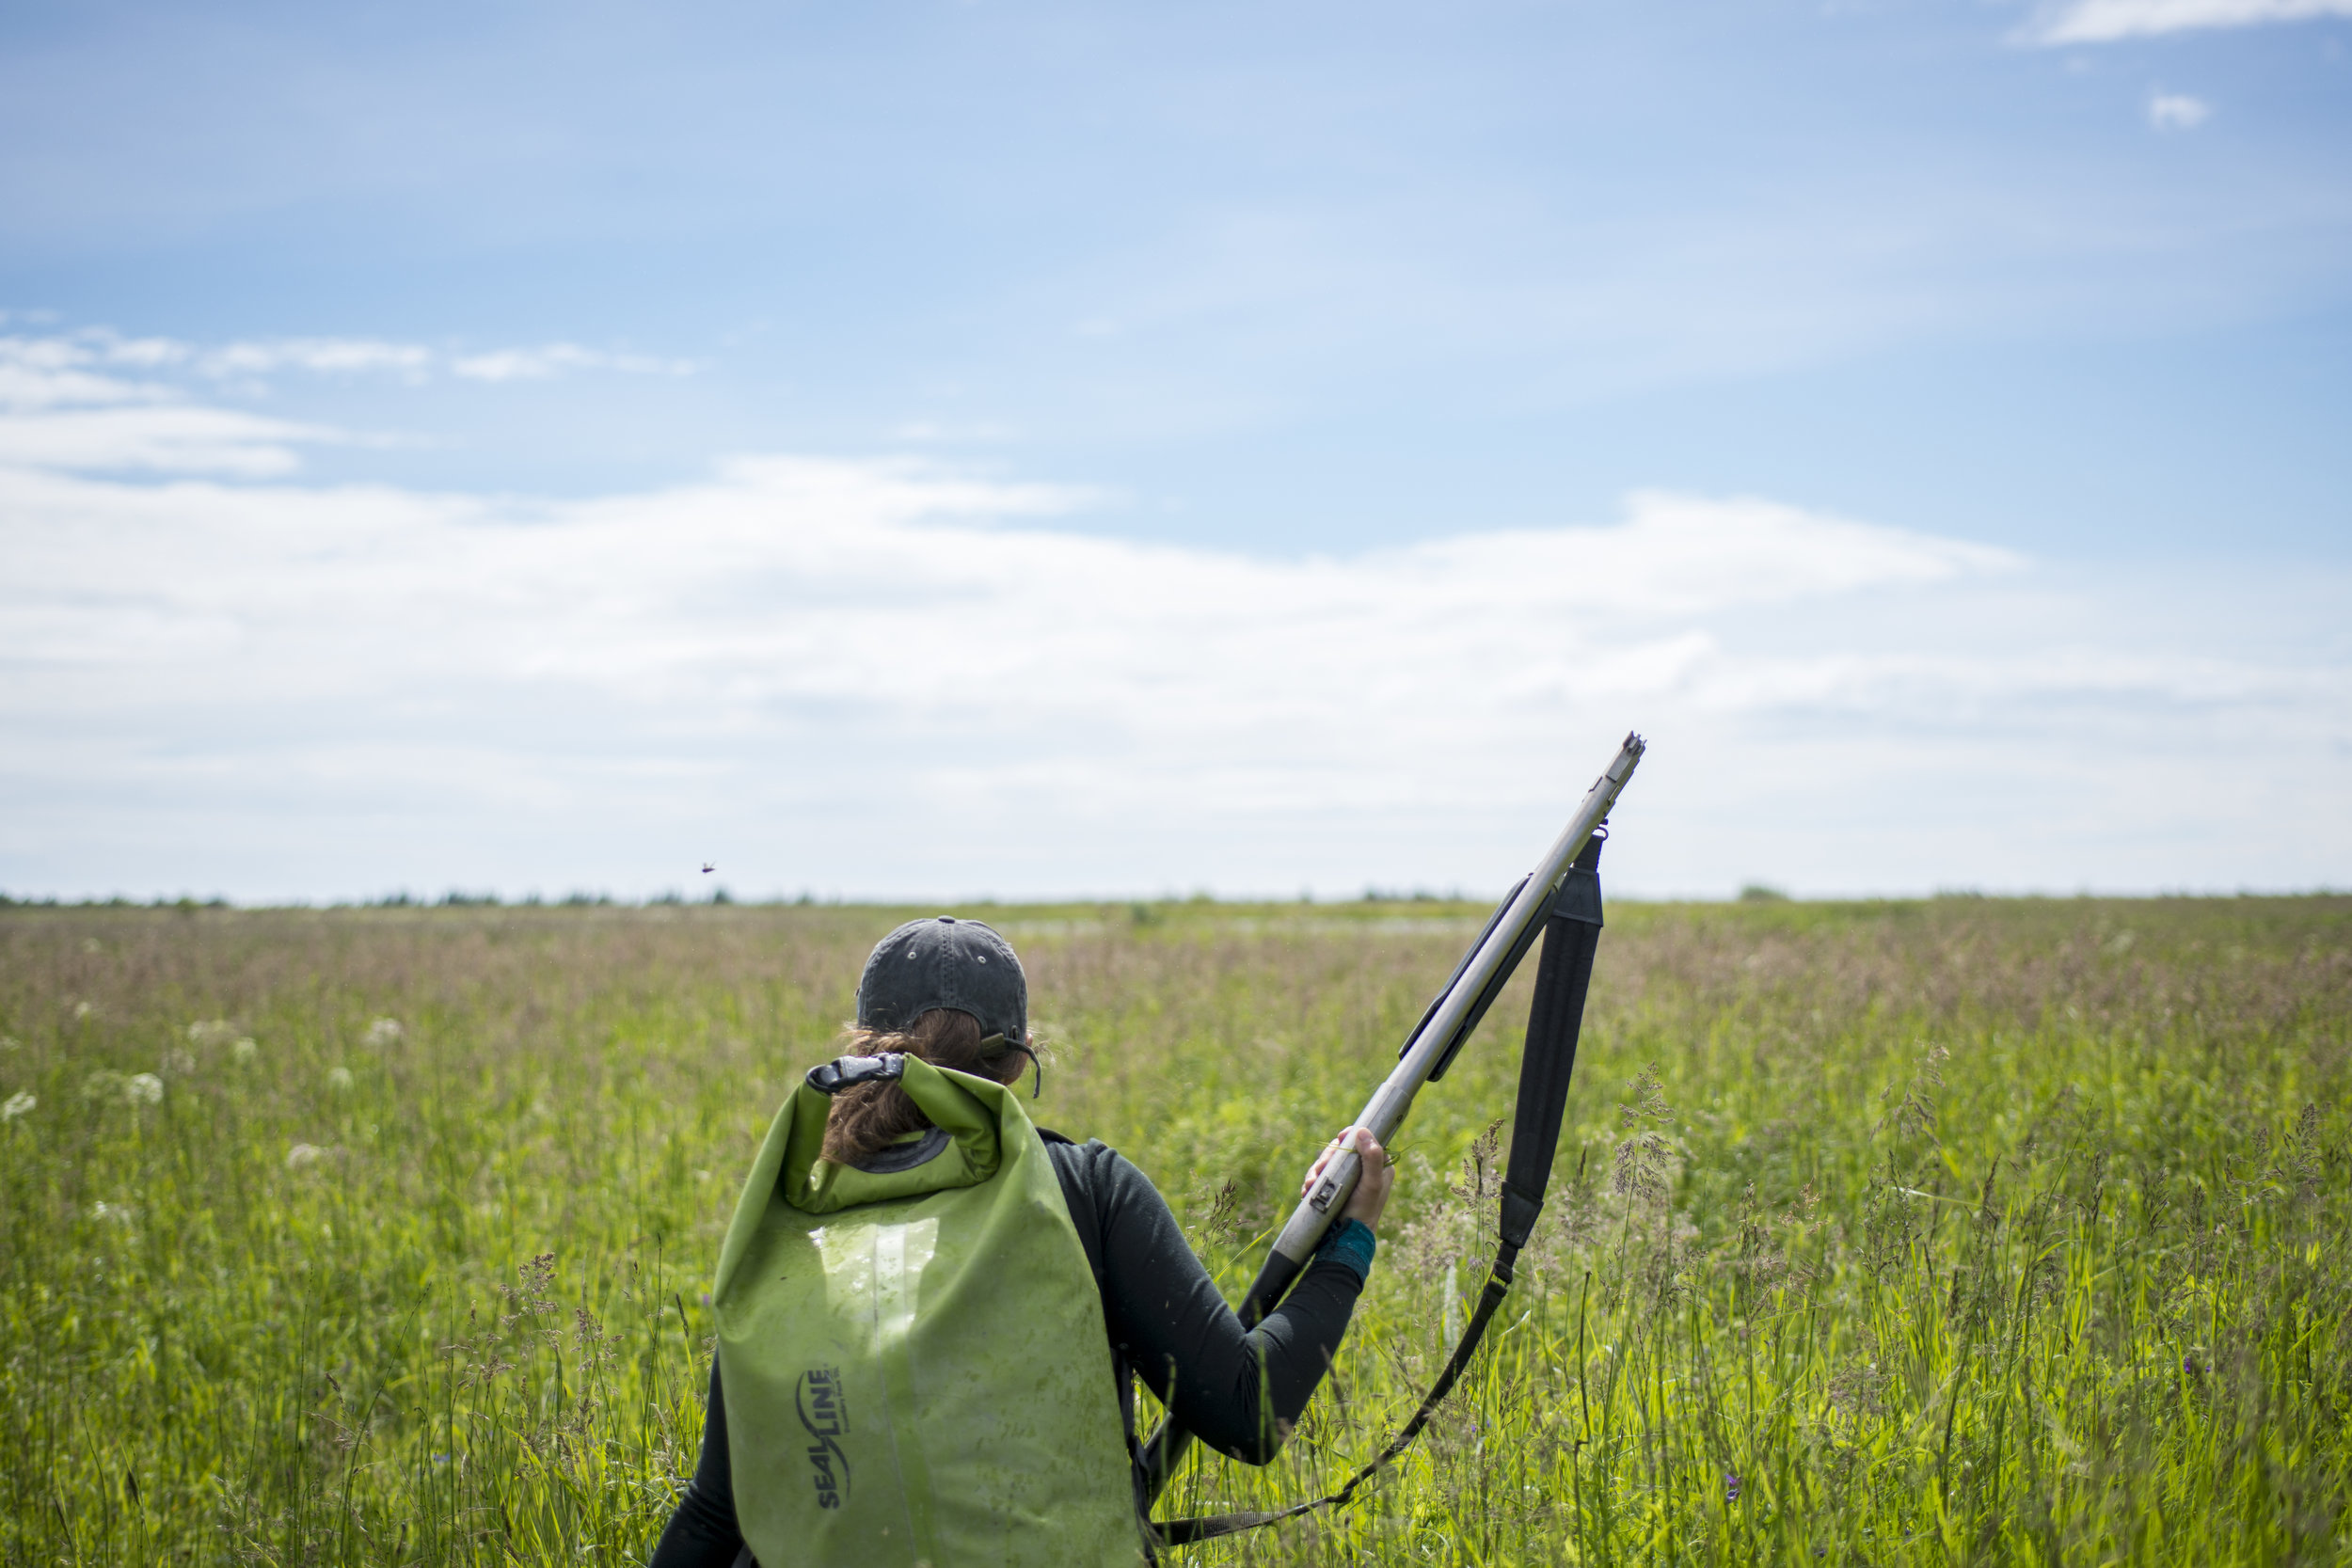 Elizabeth Camarata, member of the Alaska Forest Service, totes a large rifle to protect her and the group from bear attacks while working in the Copper River delta on a Elodea treatment.